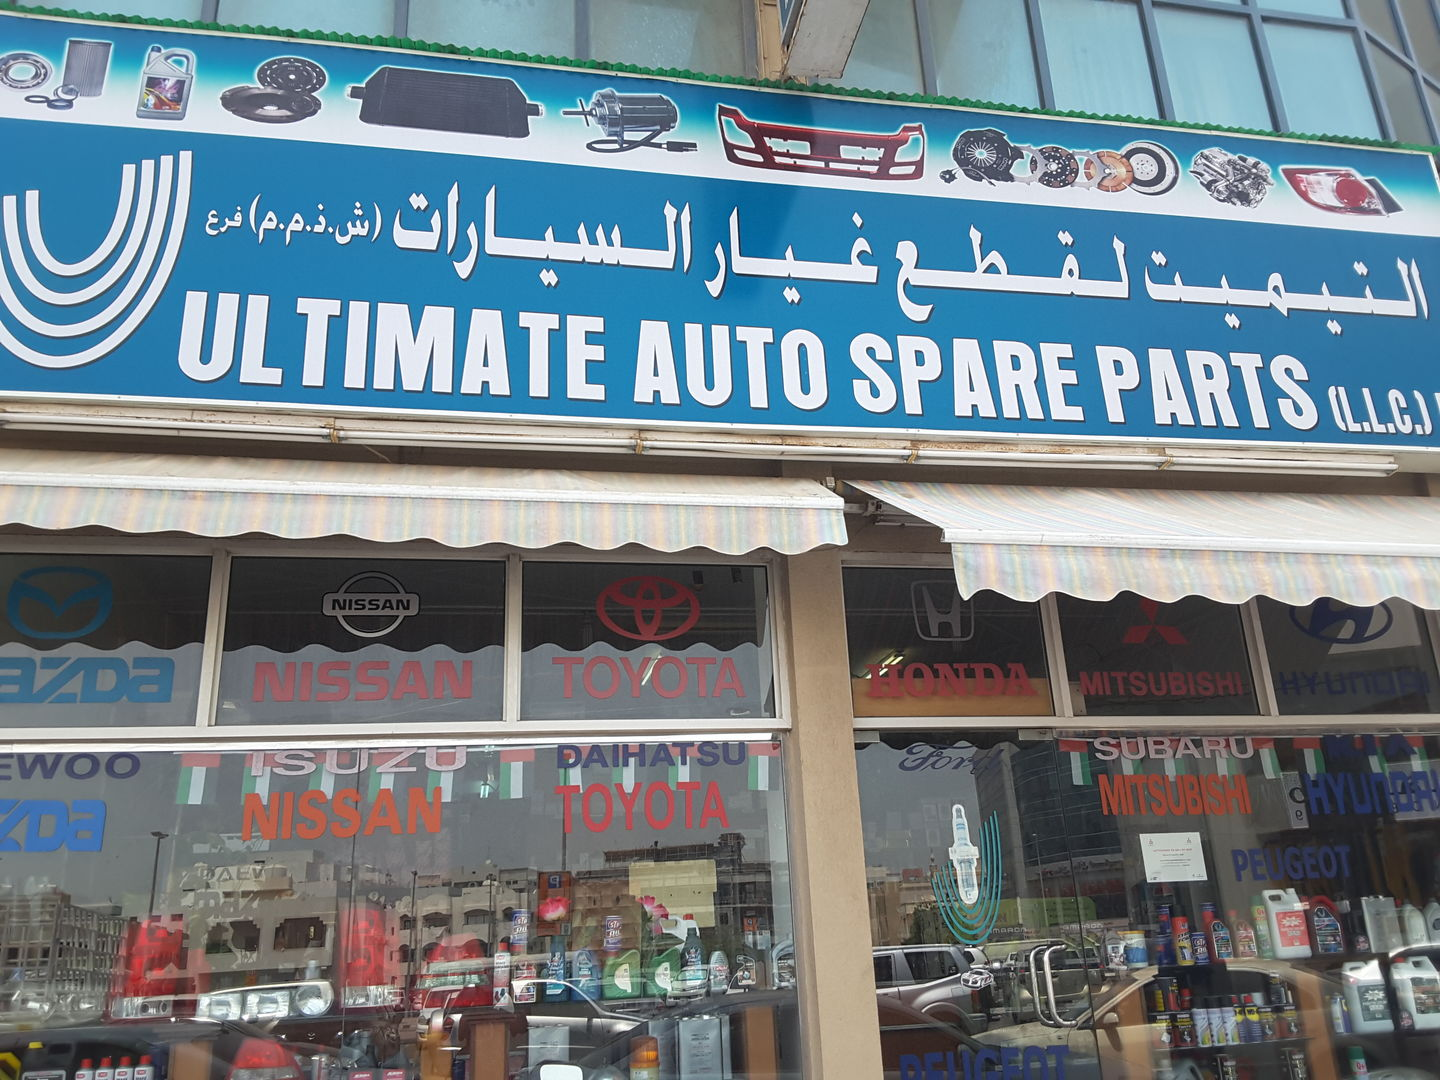 HiDubai-business-ultimate-auto-spare-parts-transport-vehicle-services-specialized-auto-services-al-khabaisi-dubai-2